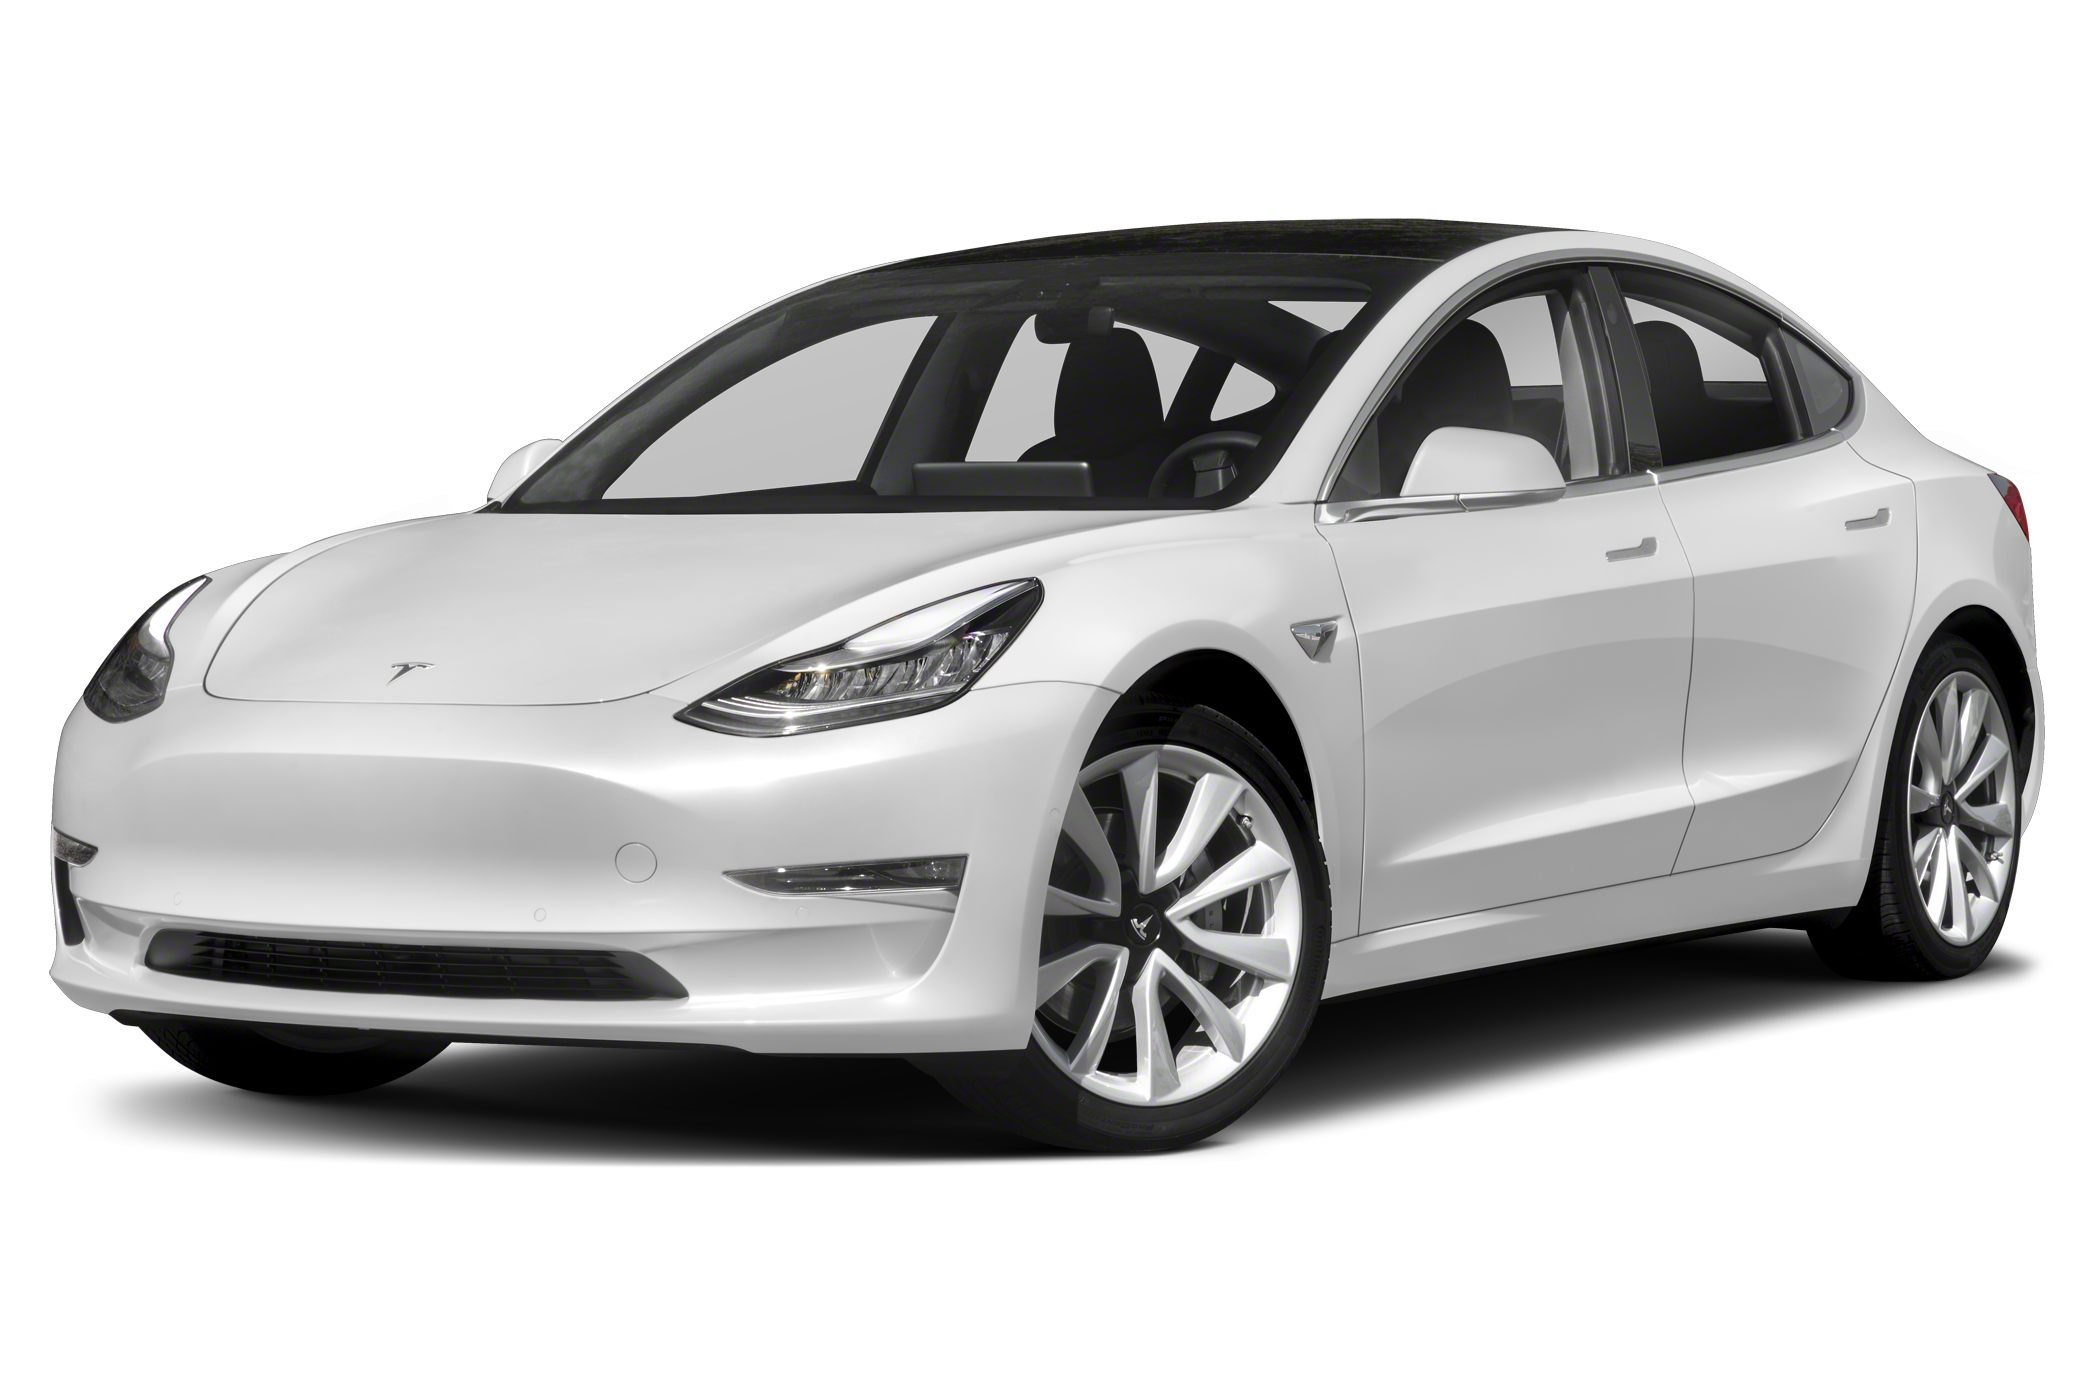 Long Range 4dr All Wheel Drive Sedan 2019 Tesla Model 3 Photos